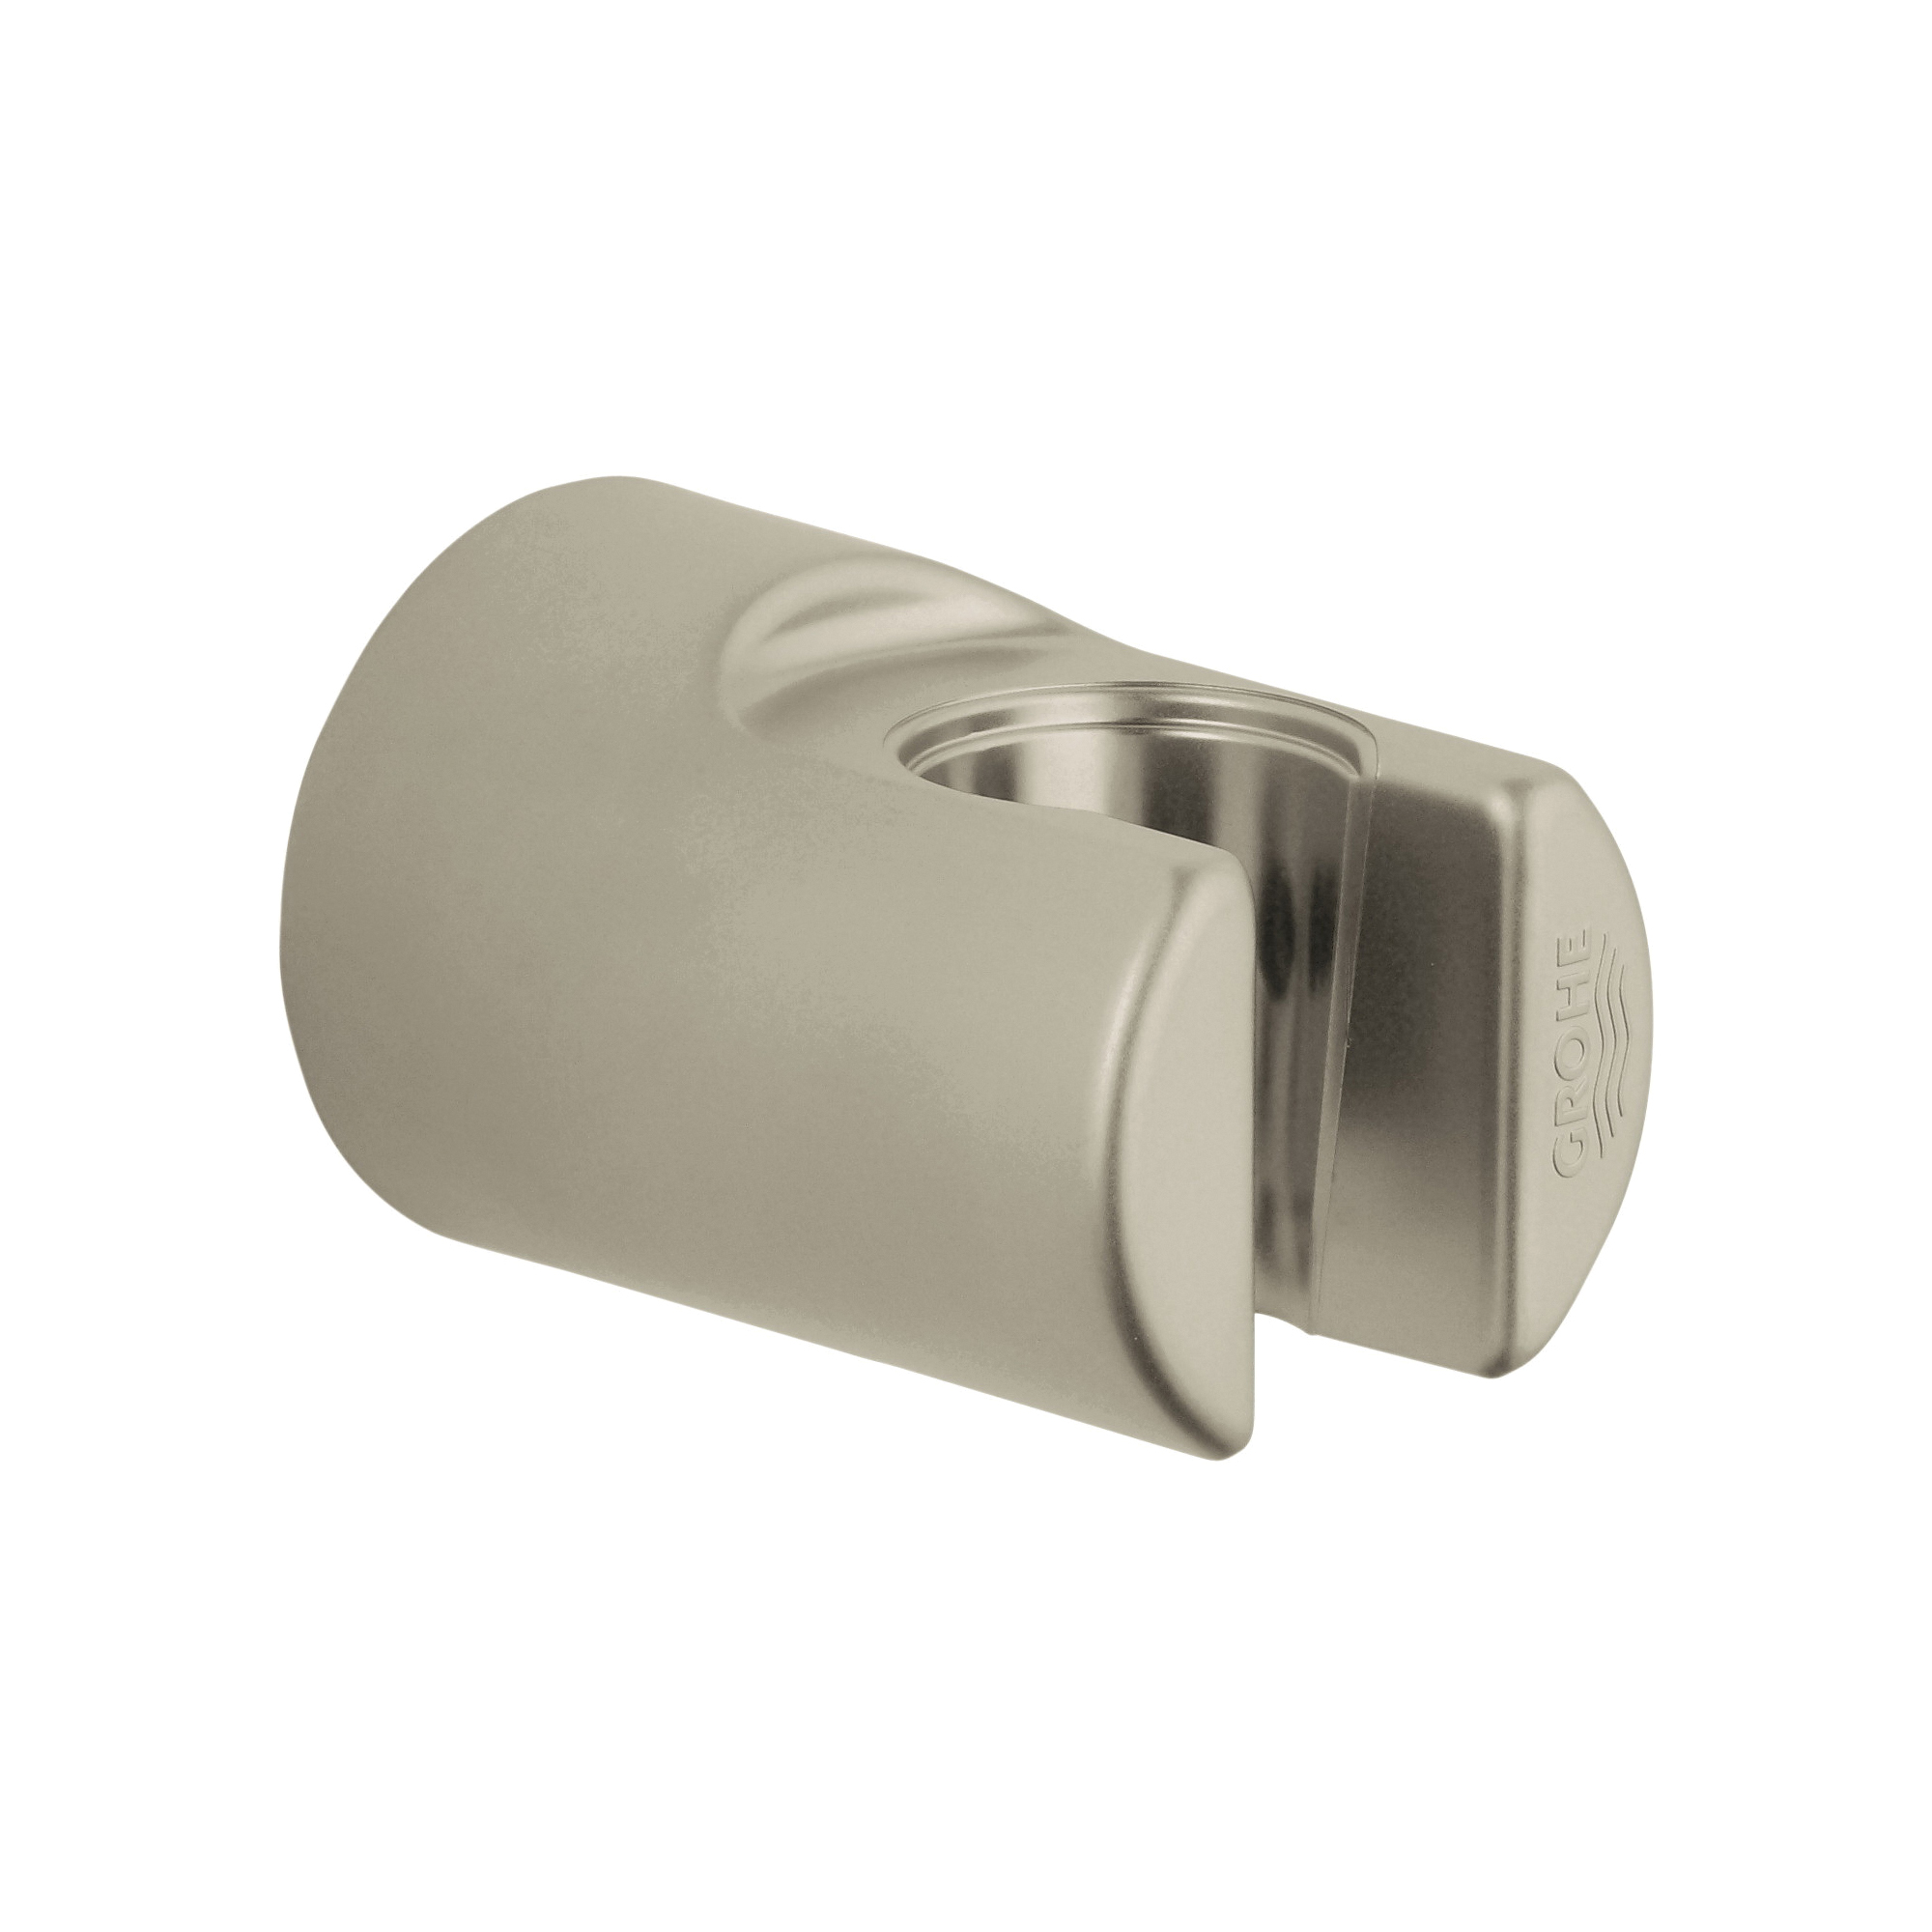 GROHE 28622EN0 Relexa Hand Shower Holder, Wall Mount, Import